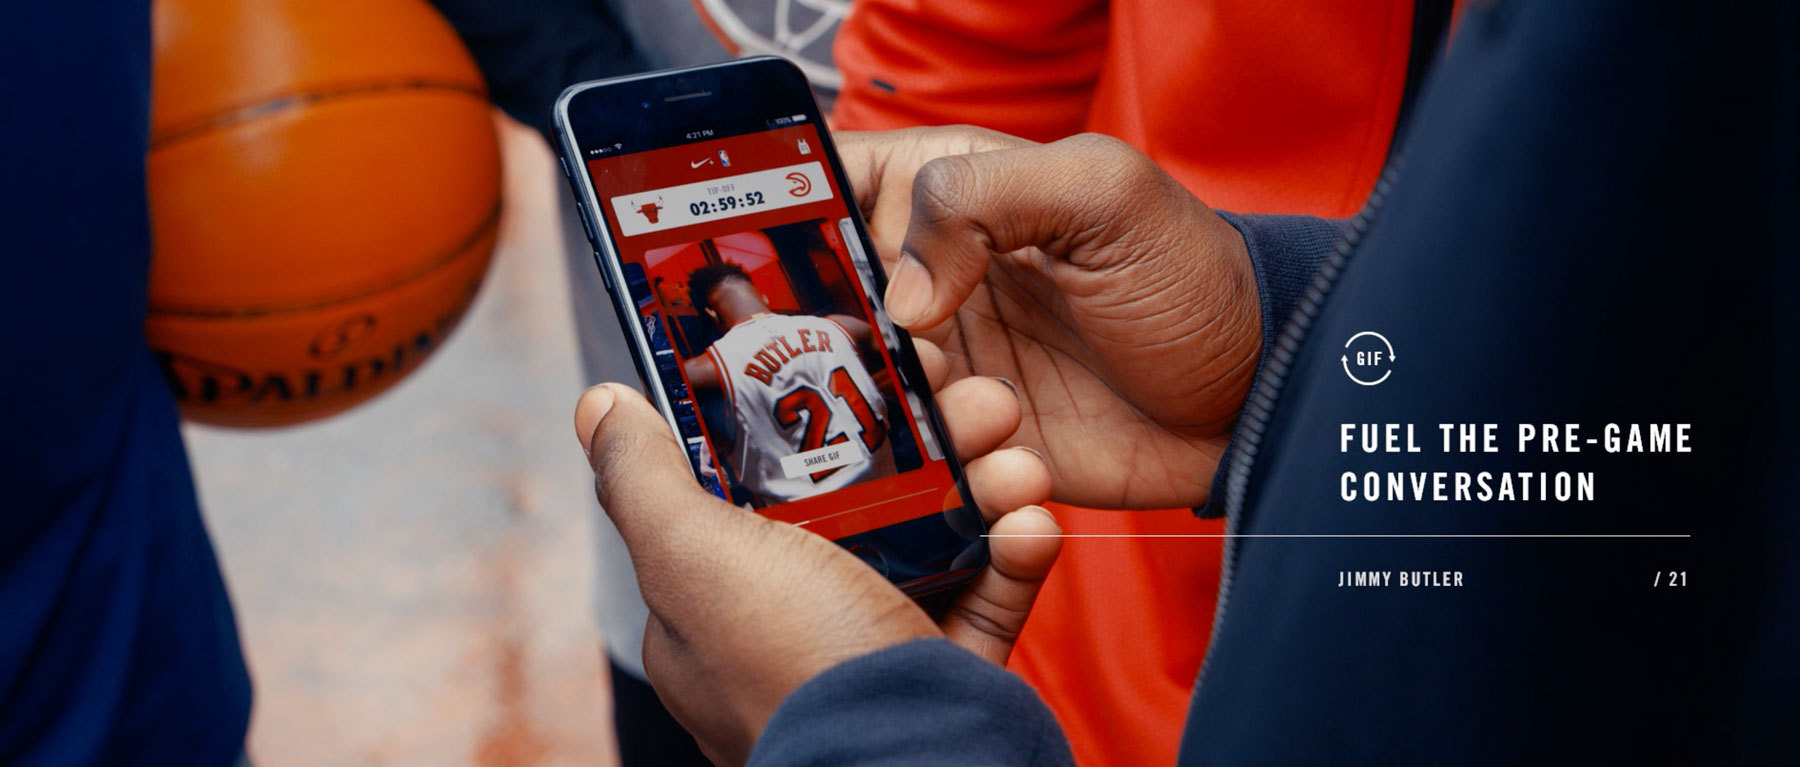 A young man is holding a phone with the Nike Connected Jersey experience showing.